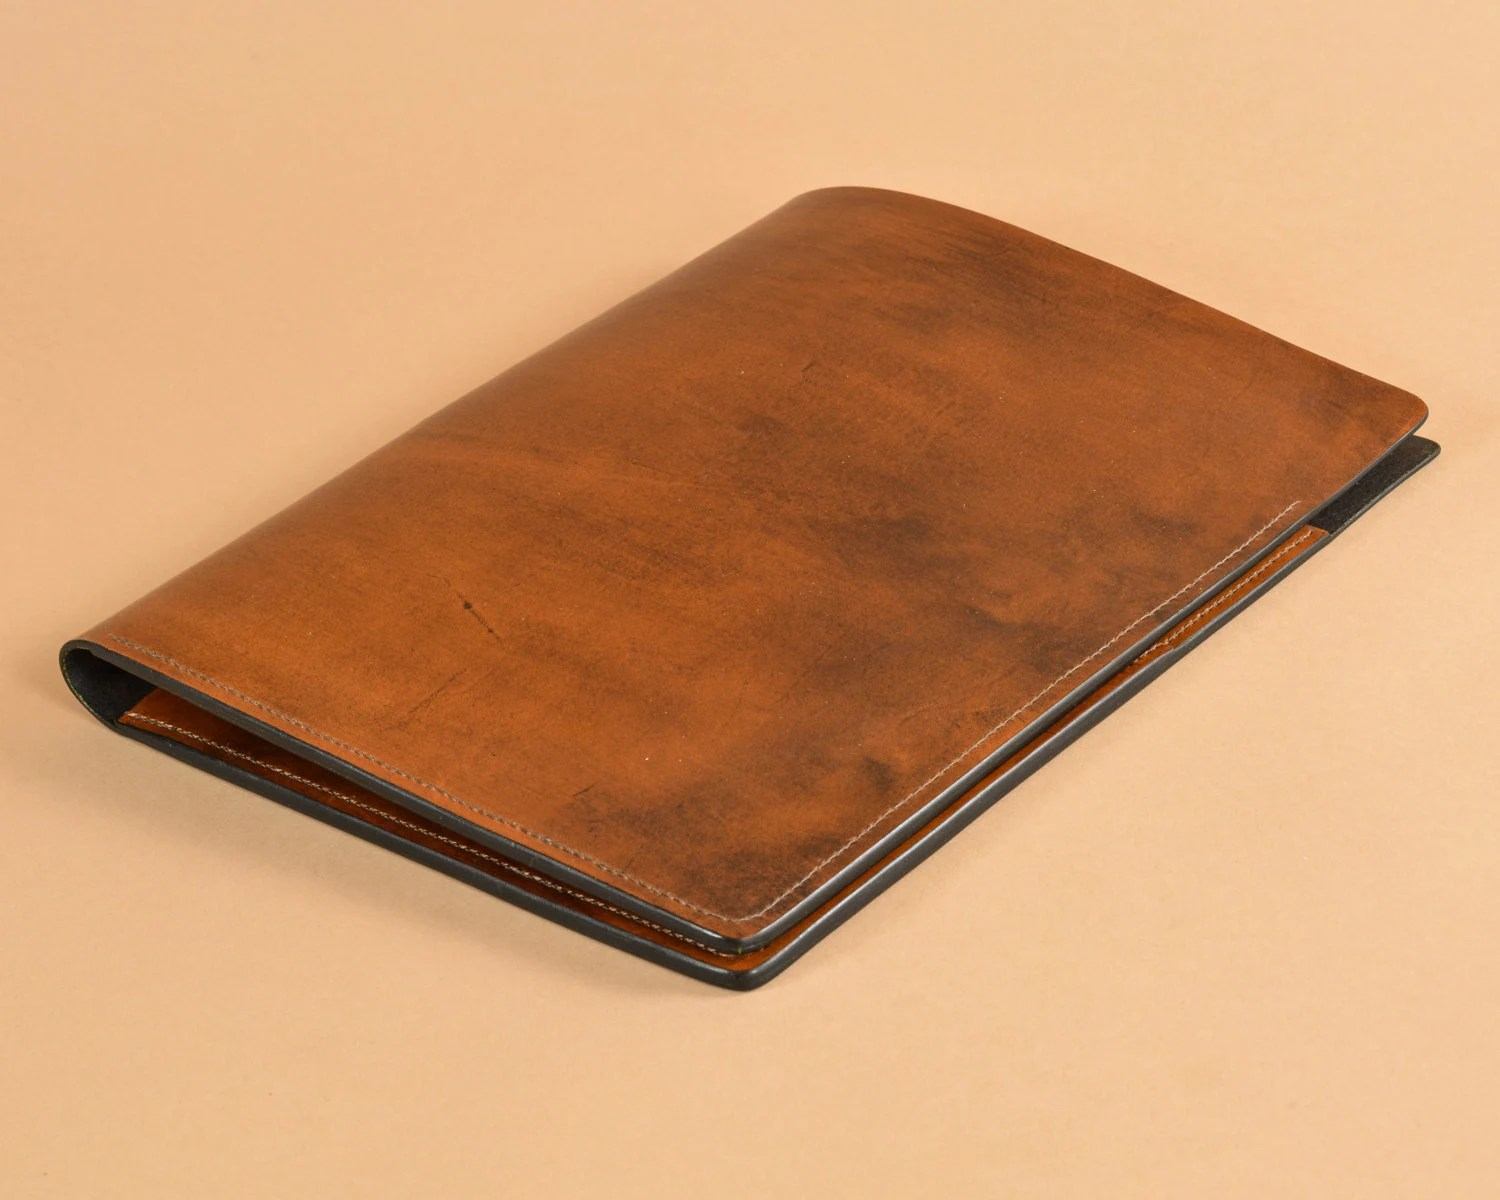 Leather Folder Presentation Folder Resume Folder Etsy